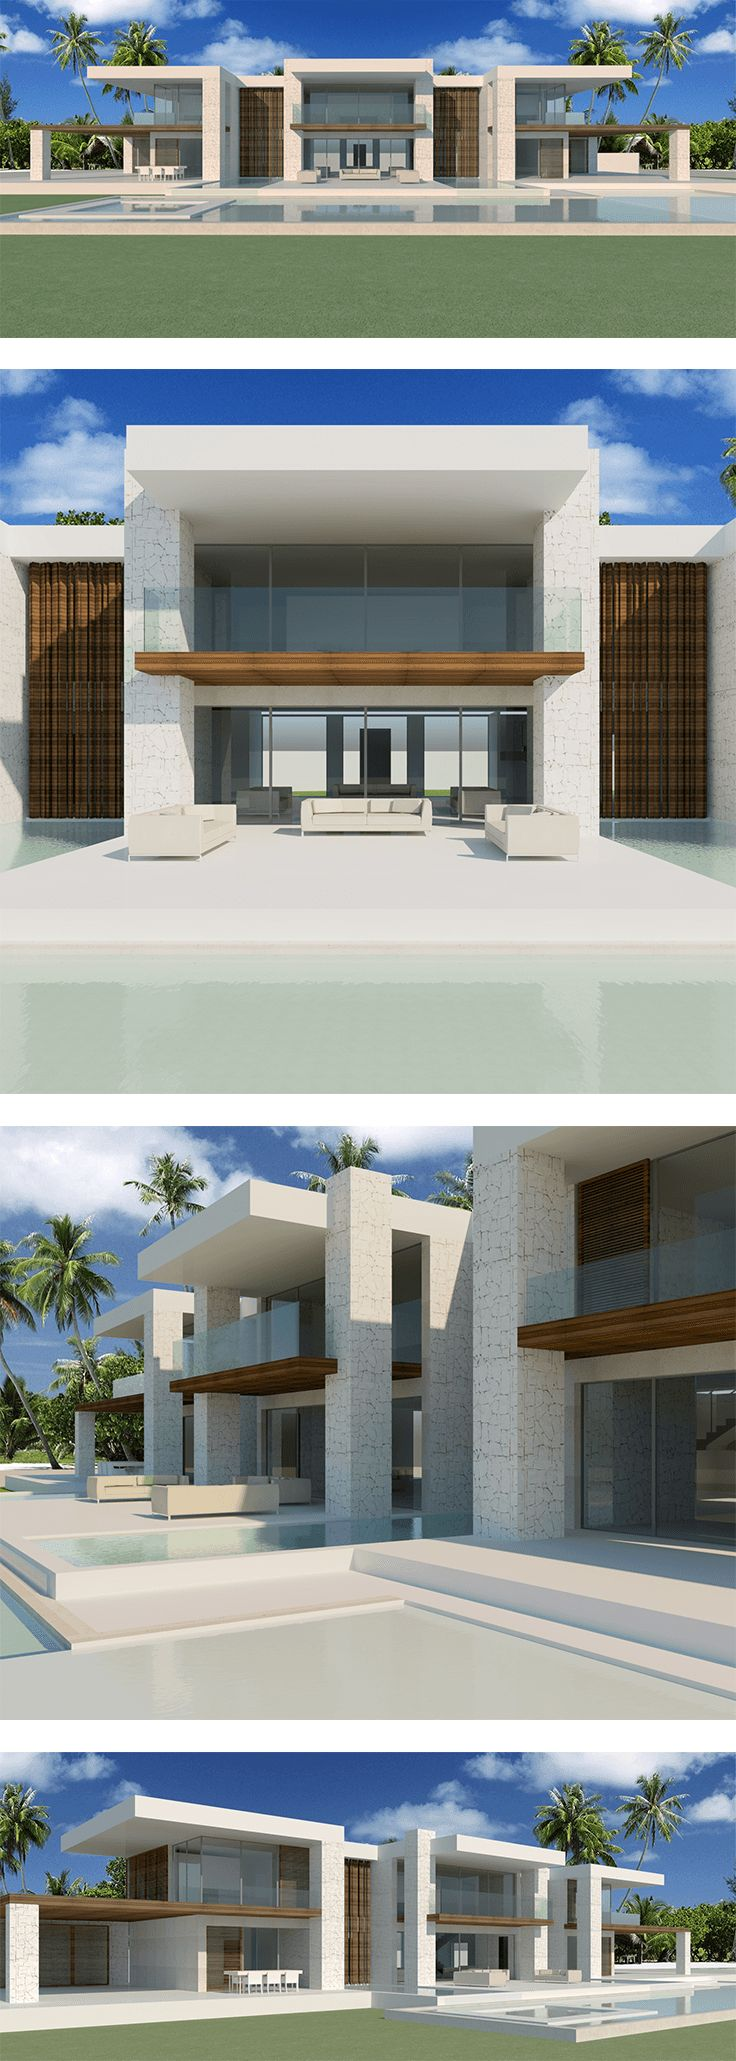 Trilogy House, #design by #Modern #Villas for a #Union #Island resort